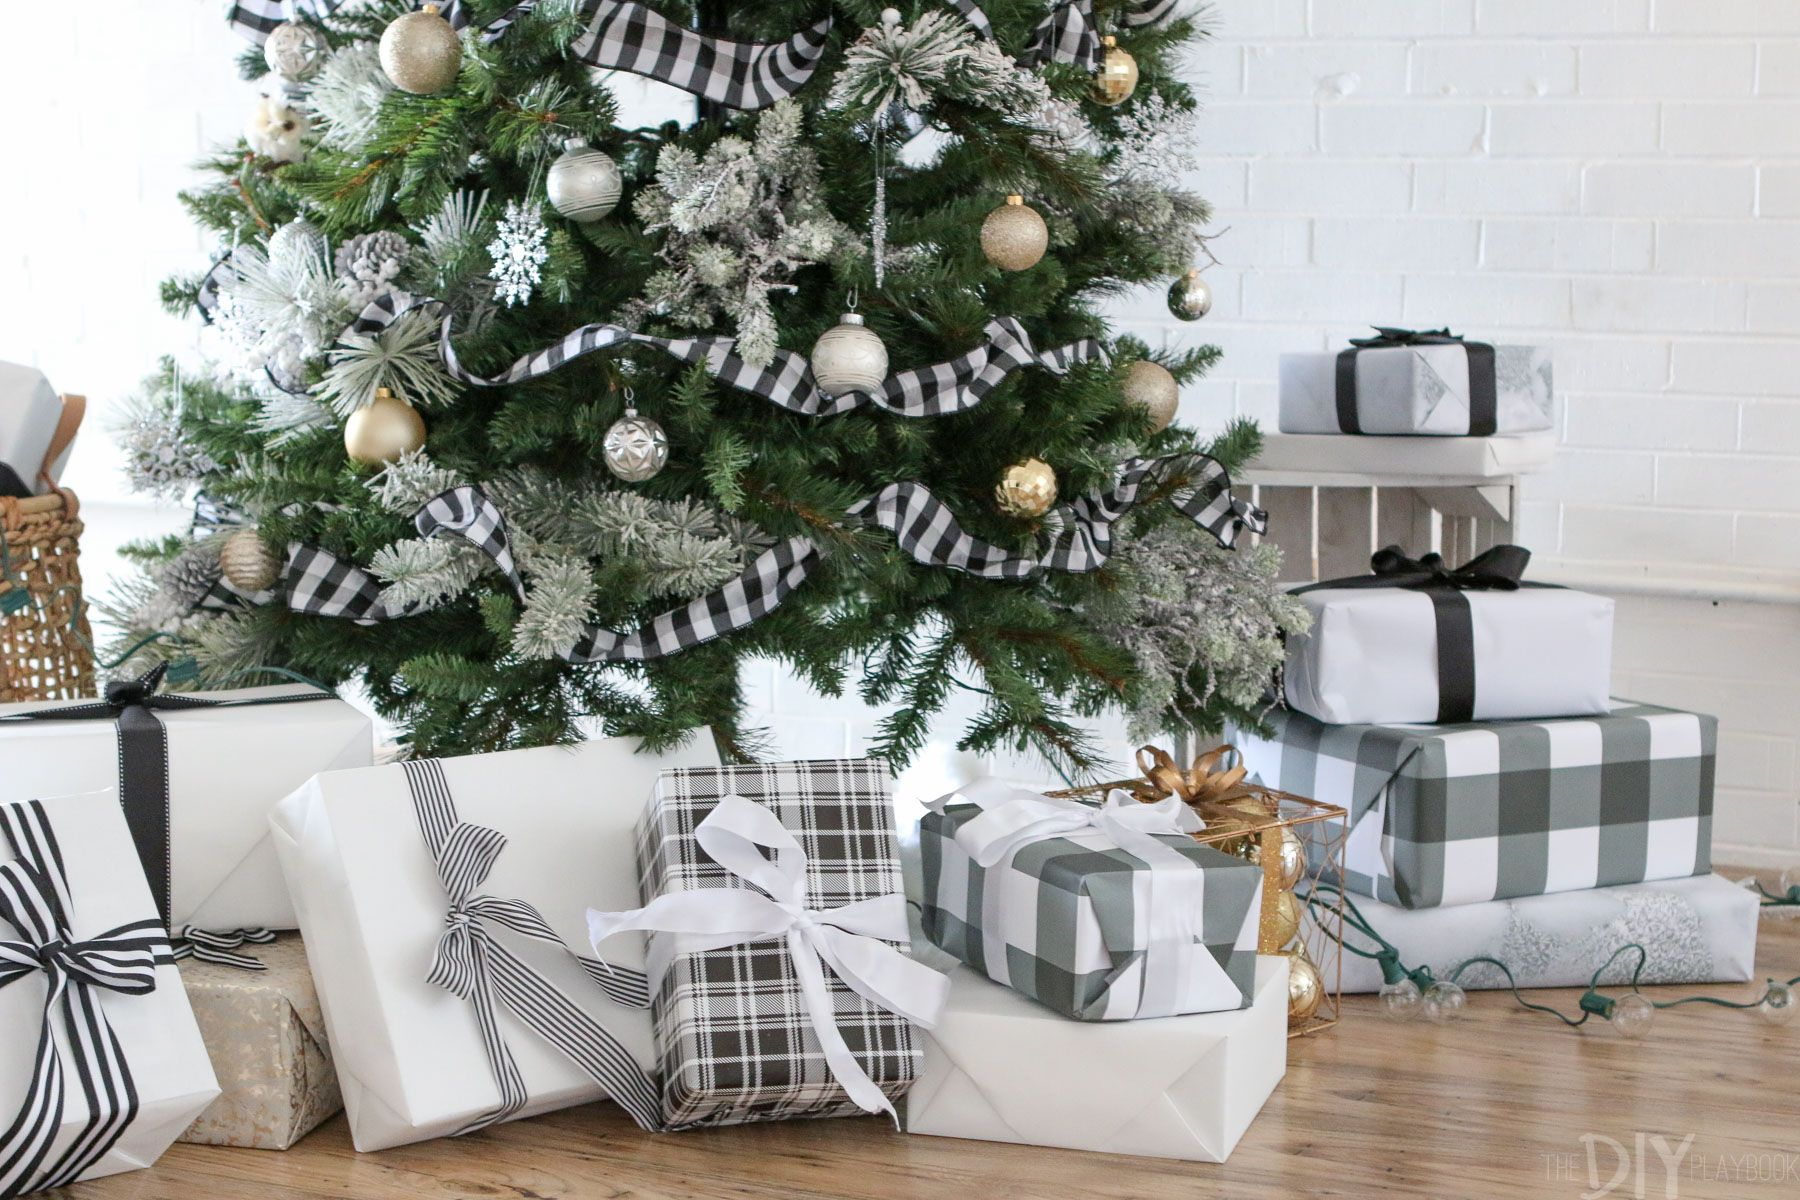 Black And White Christmas Tree For The Holidays Diy Playbook White Christmas Decor Christmas Tree With Presents Plaid Christmas Decor